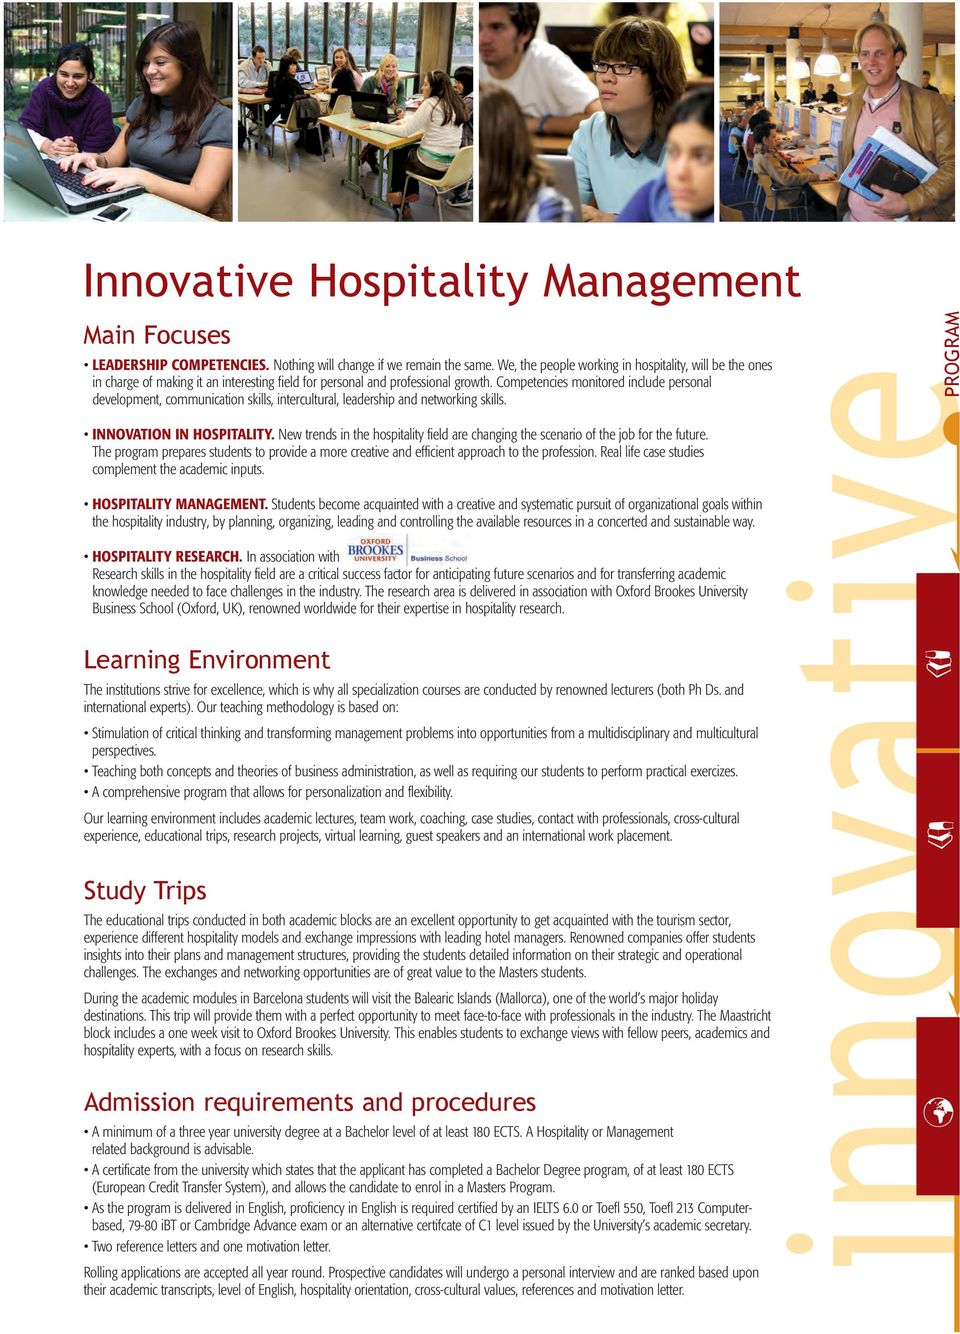 Competencies monitored include personal development, communication skills, intercultural, leadership and networking skills. INNOVATION IN HOSPITALITY.